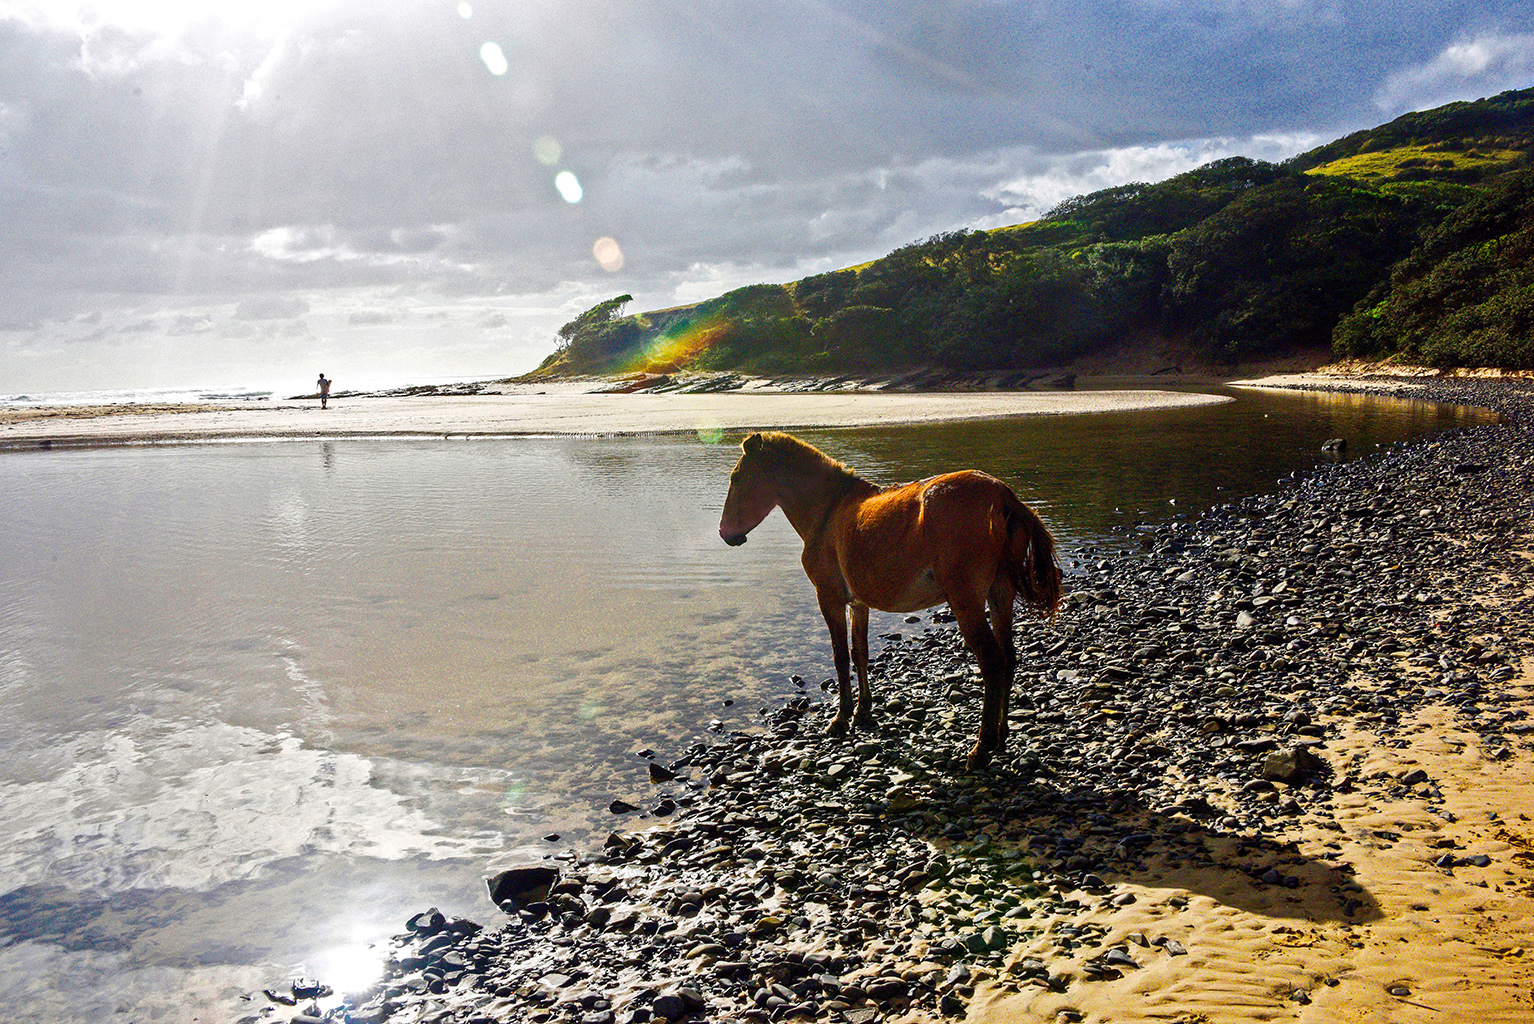 A lifestyle photo of a horse standing by the water along the Wild Coast, South Africa. There is a surfer in the distance walking towards the ocean with mountains in the background.